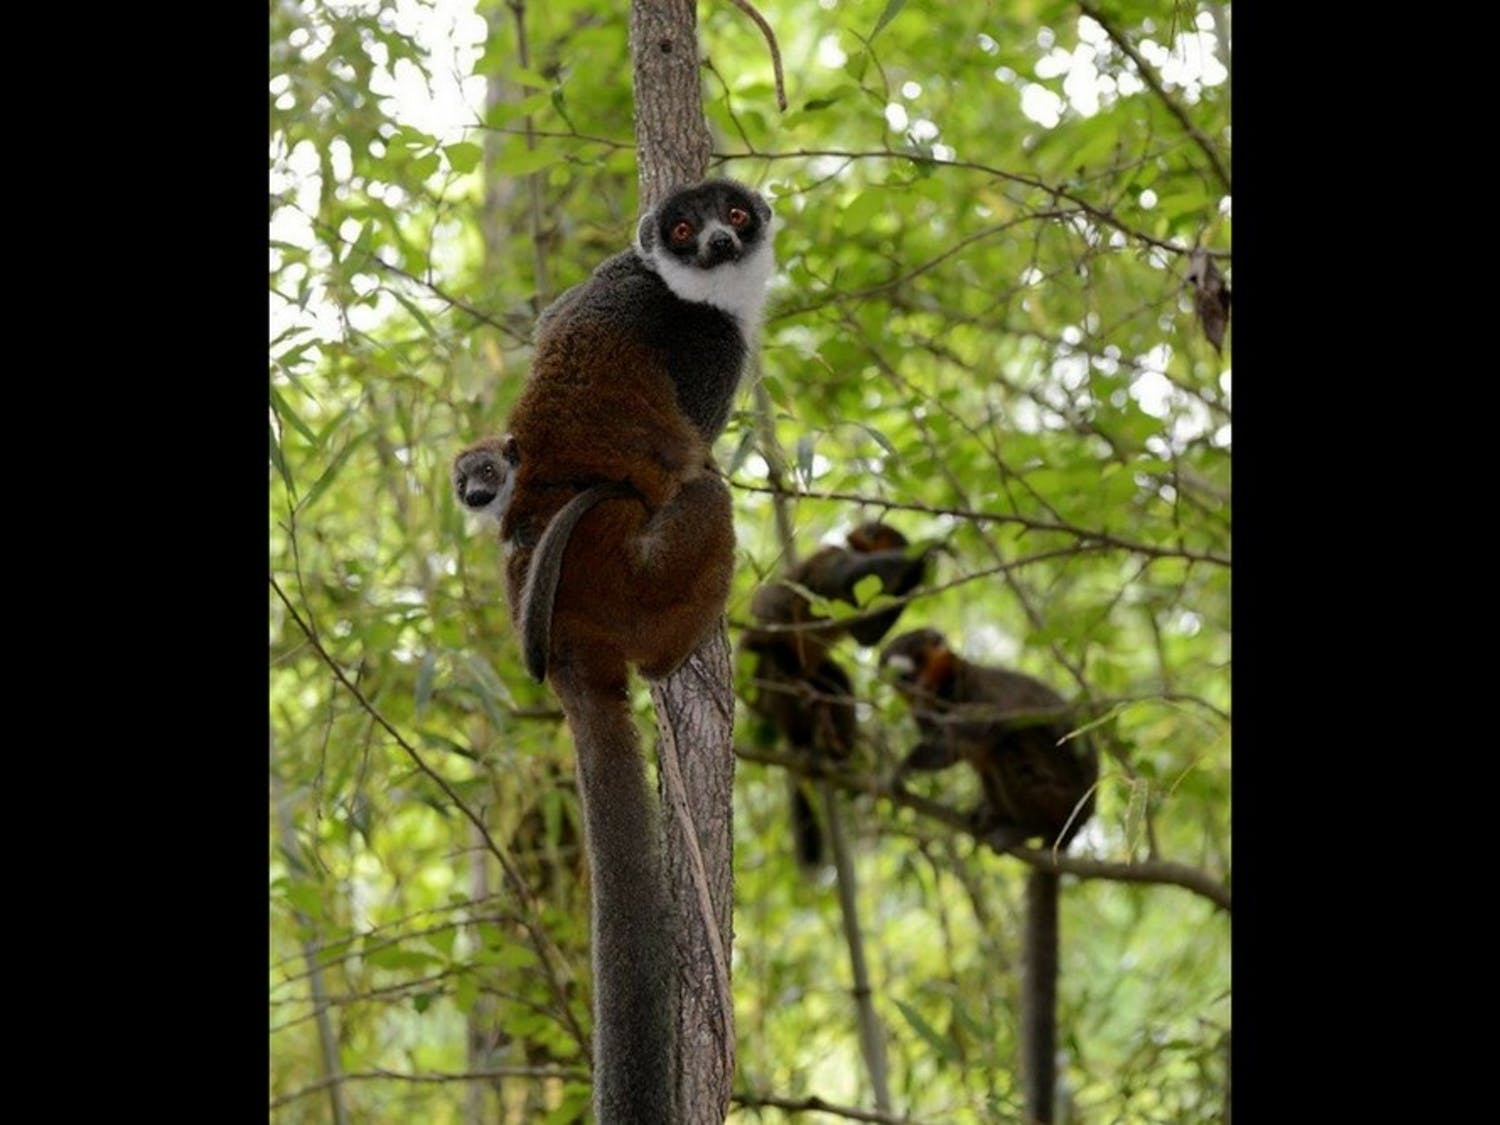 Nacho, the mongoose lemur pictured here, is one of four new lemurs.